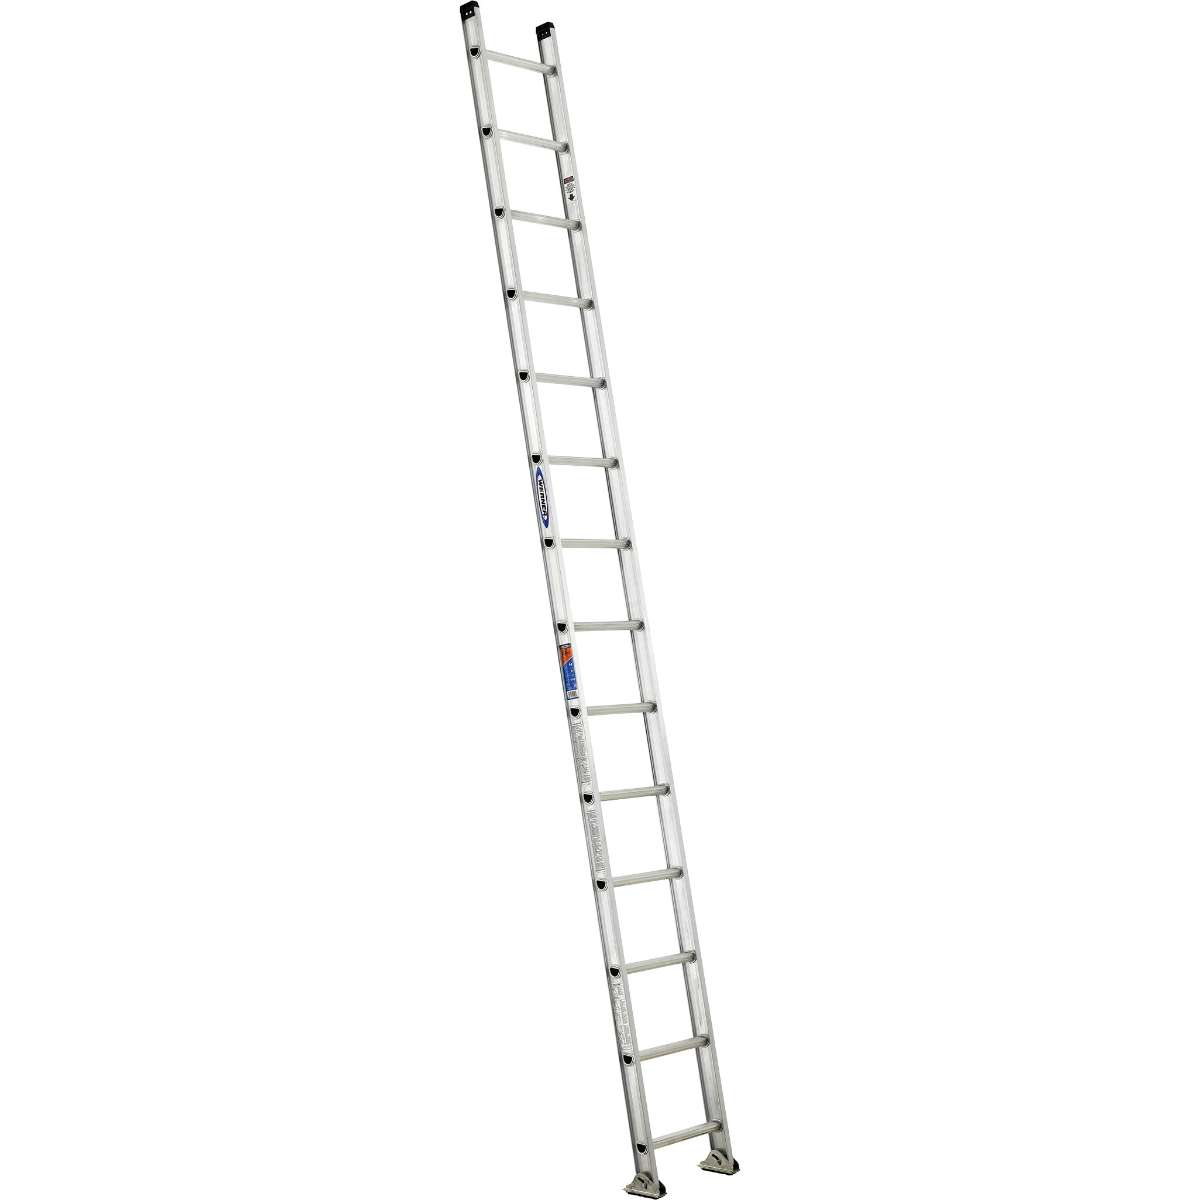 Aluminum Straight Ladder - 300 lb. Rated (D1500-1)